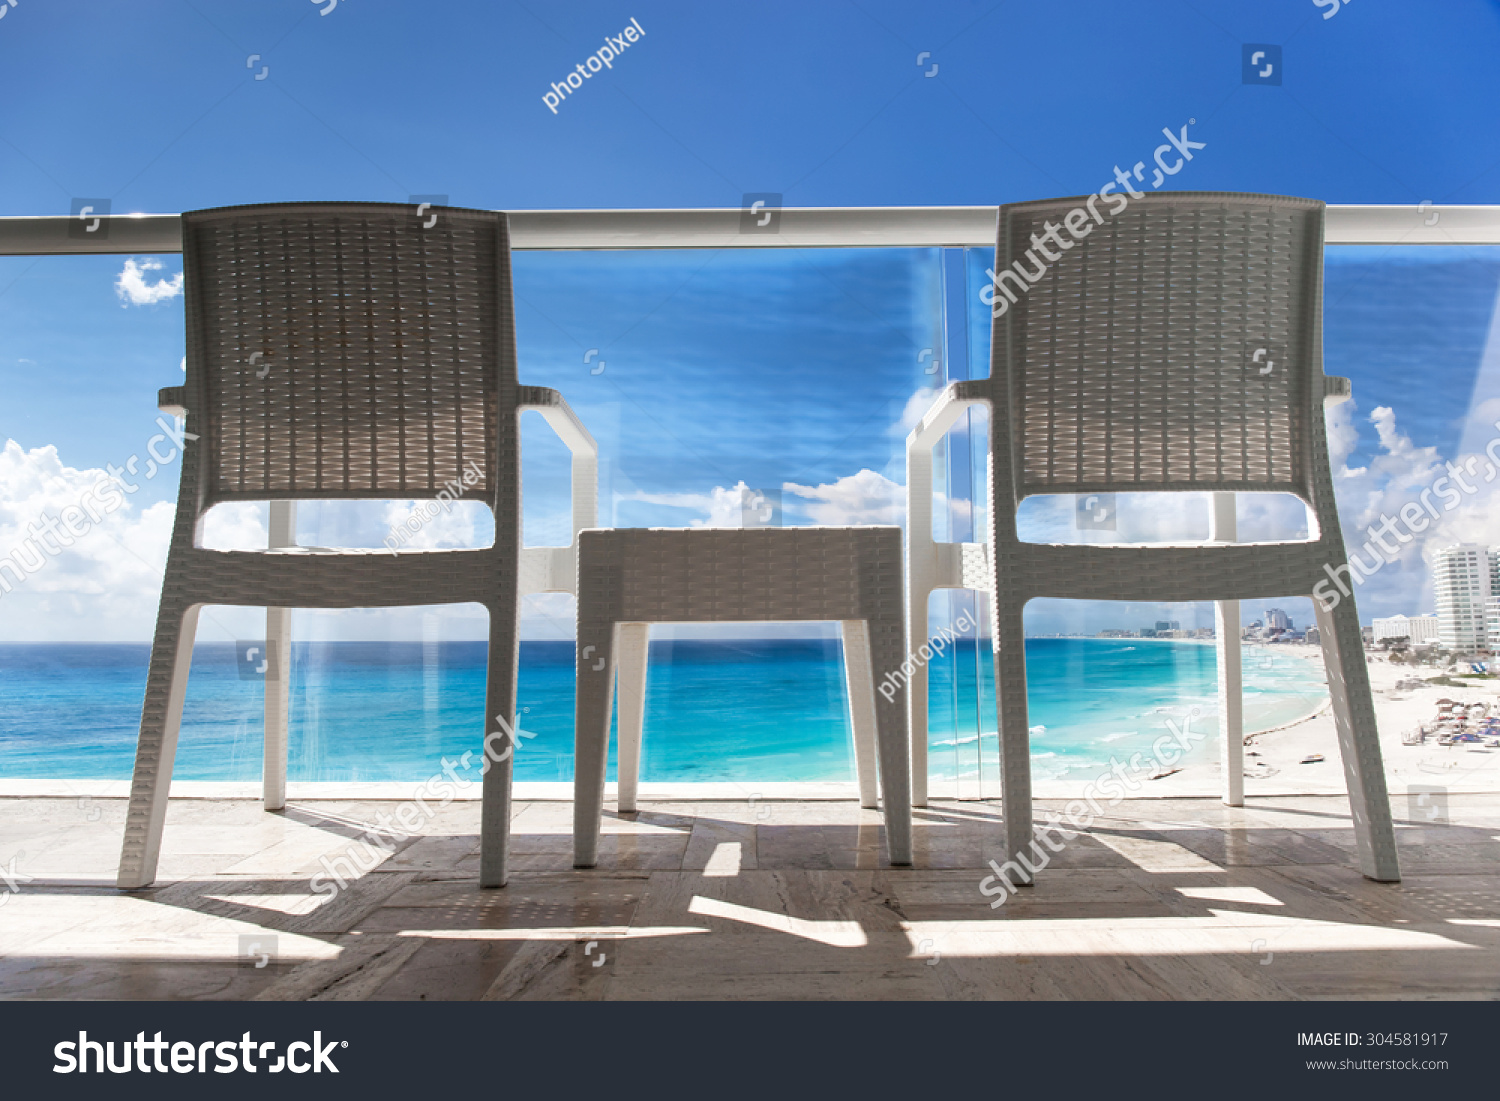 Balcony with wicker chairs and table overlooking an ocean for Balcony overlooking ocean